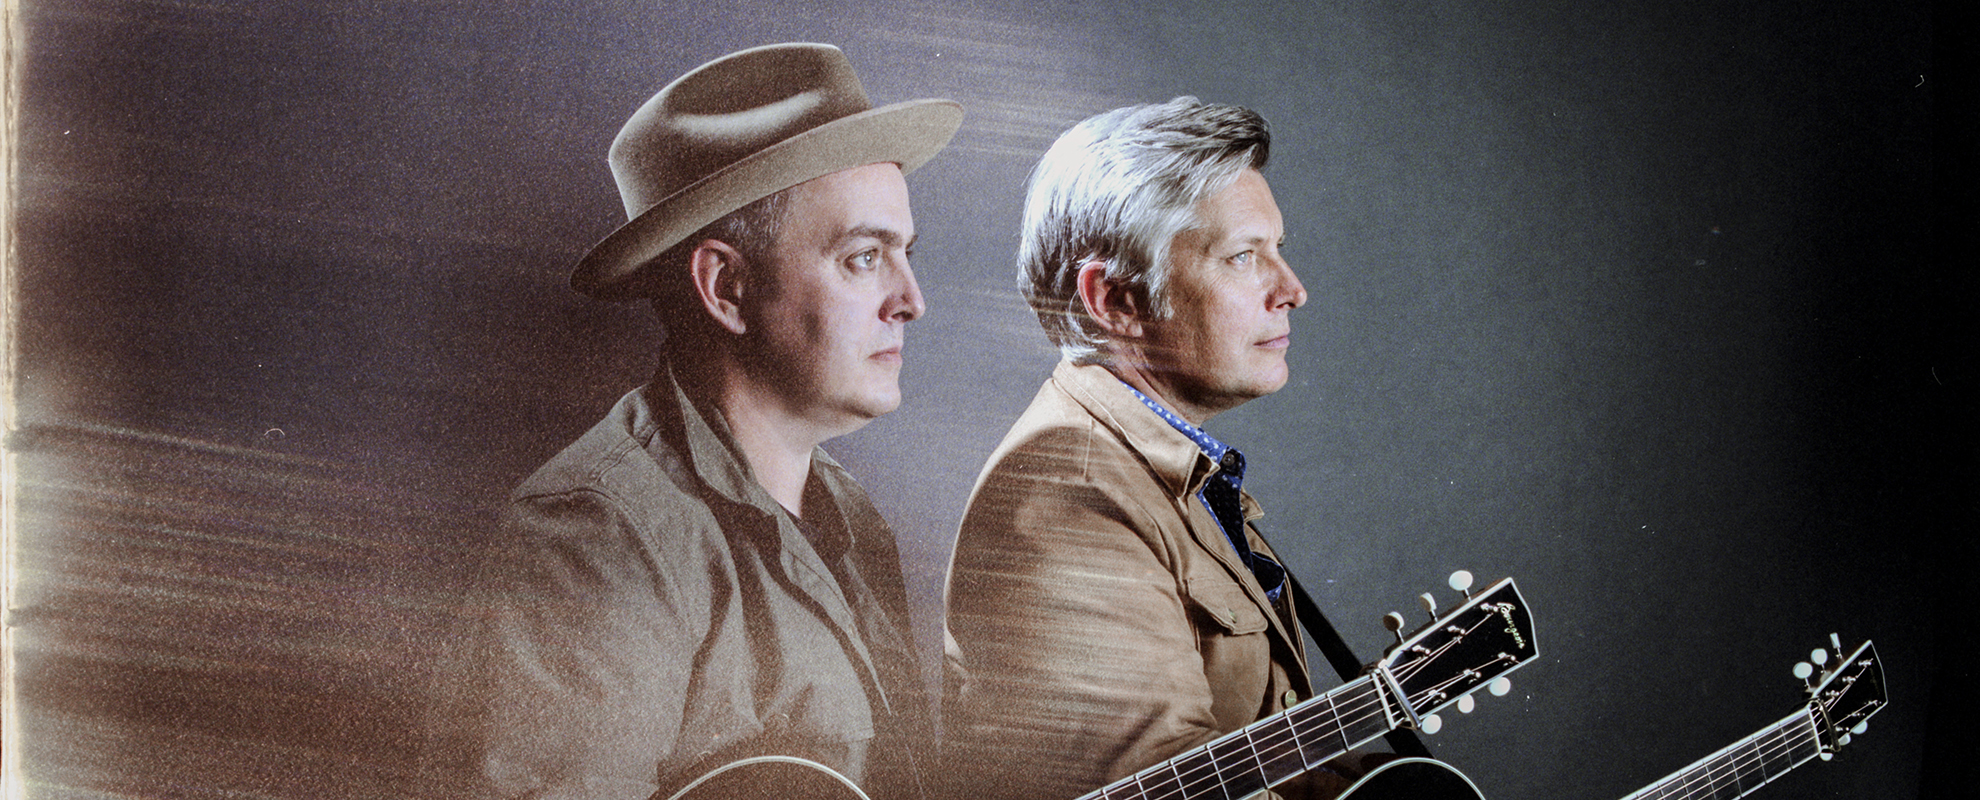 The String - The Gibson Brothers and Ruby Boots